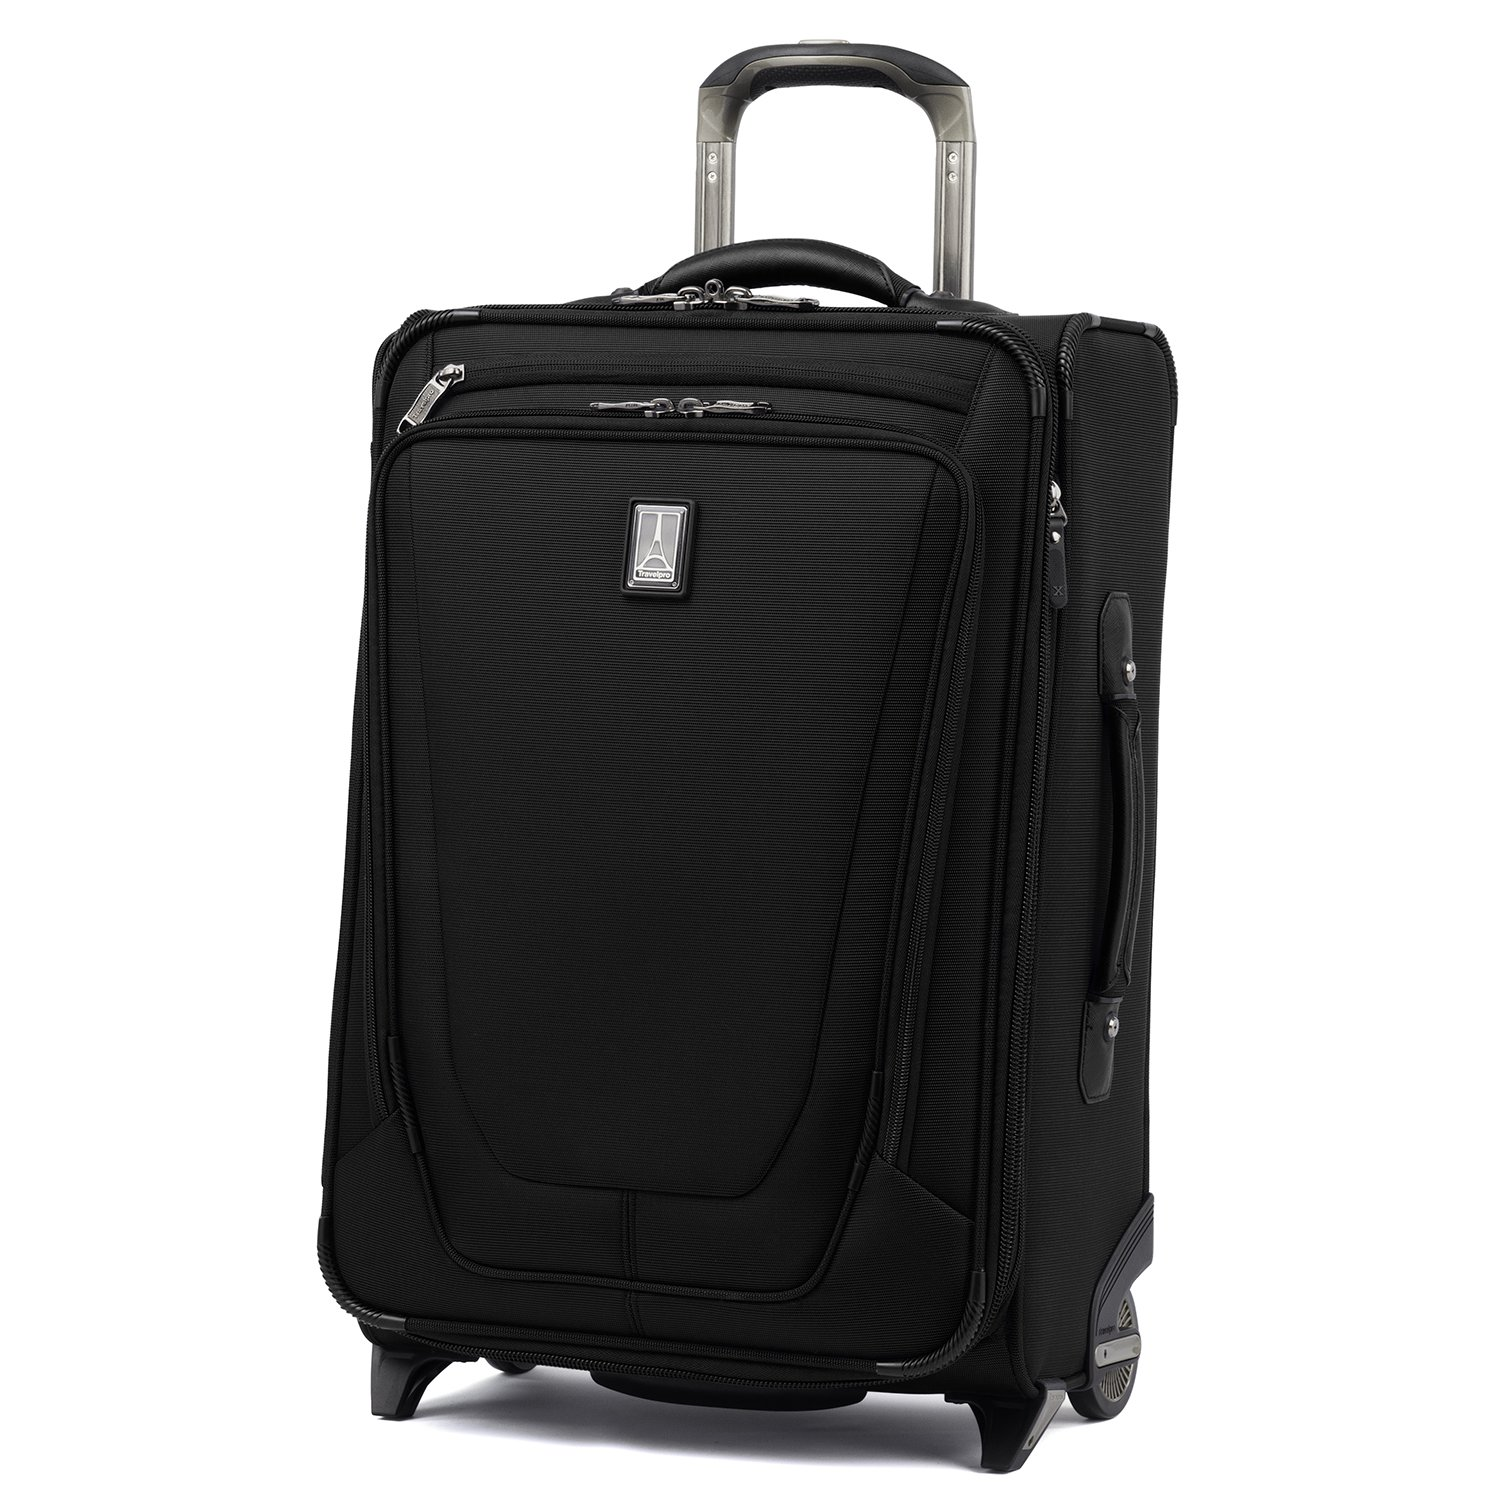 Travelpro Luggage Crew 11 22'' Carry-on Expandable Rollaboard w/Suiter and USB Port, Black by Travelpro